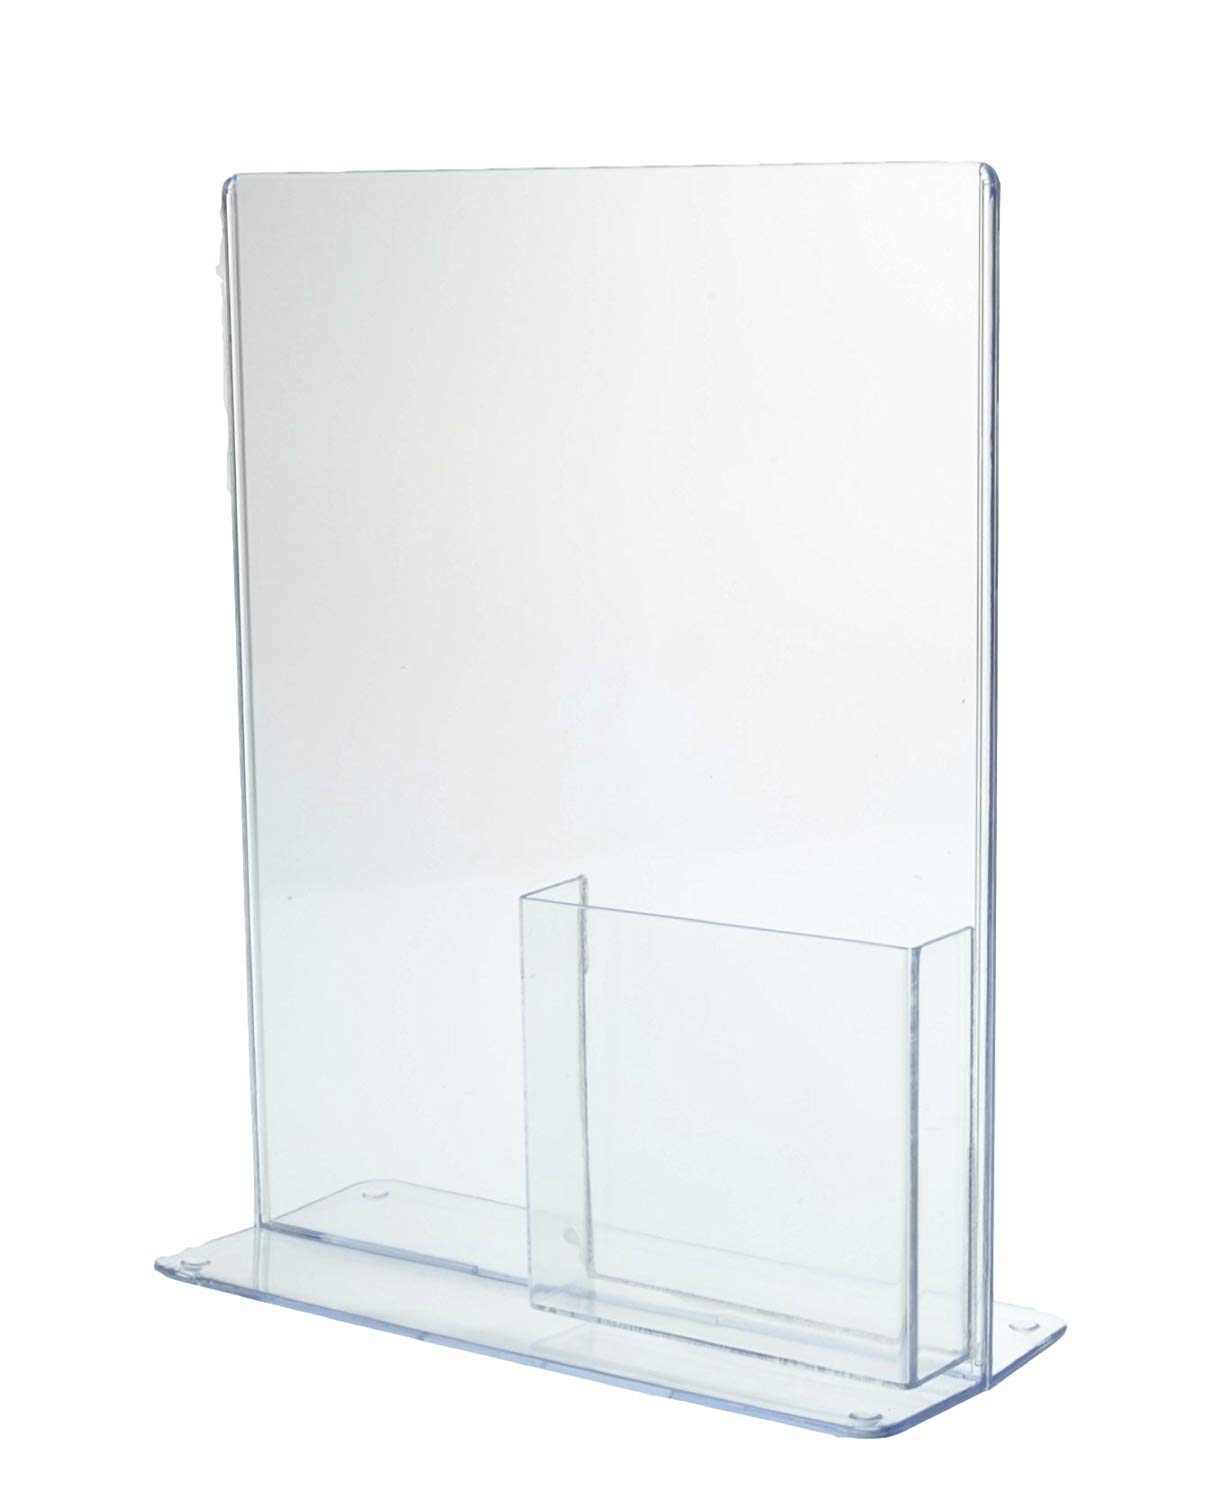 """Marketing Holders Tri-fold Acrylic Sign Holder with Pocket for 4x9 Brochures or Pamphlets T-Style Display Stand Perfect for Shows and Expos (4, 8.5""""w x 11""""h with Tri Fold Box)"""